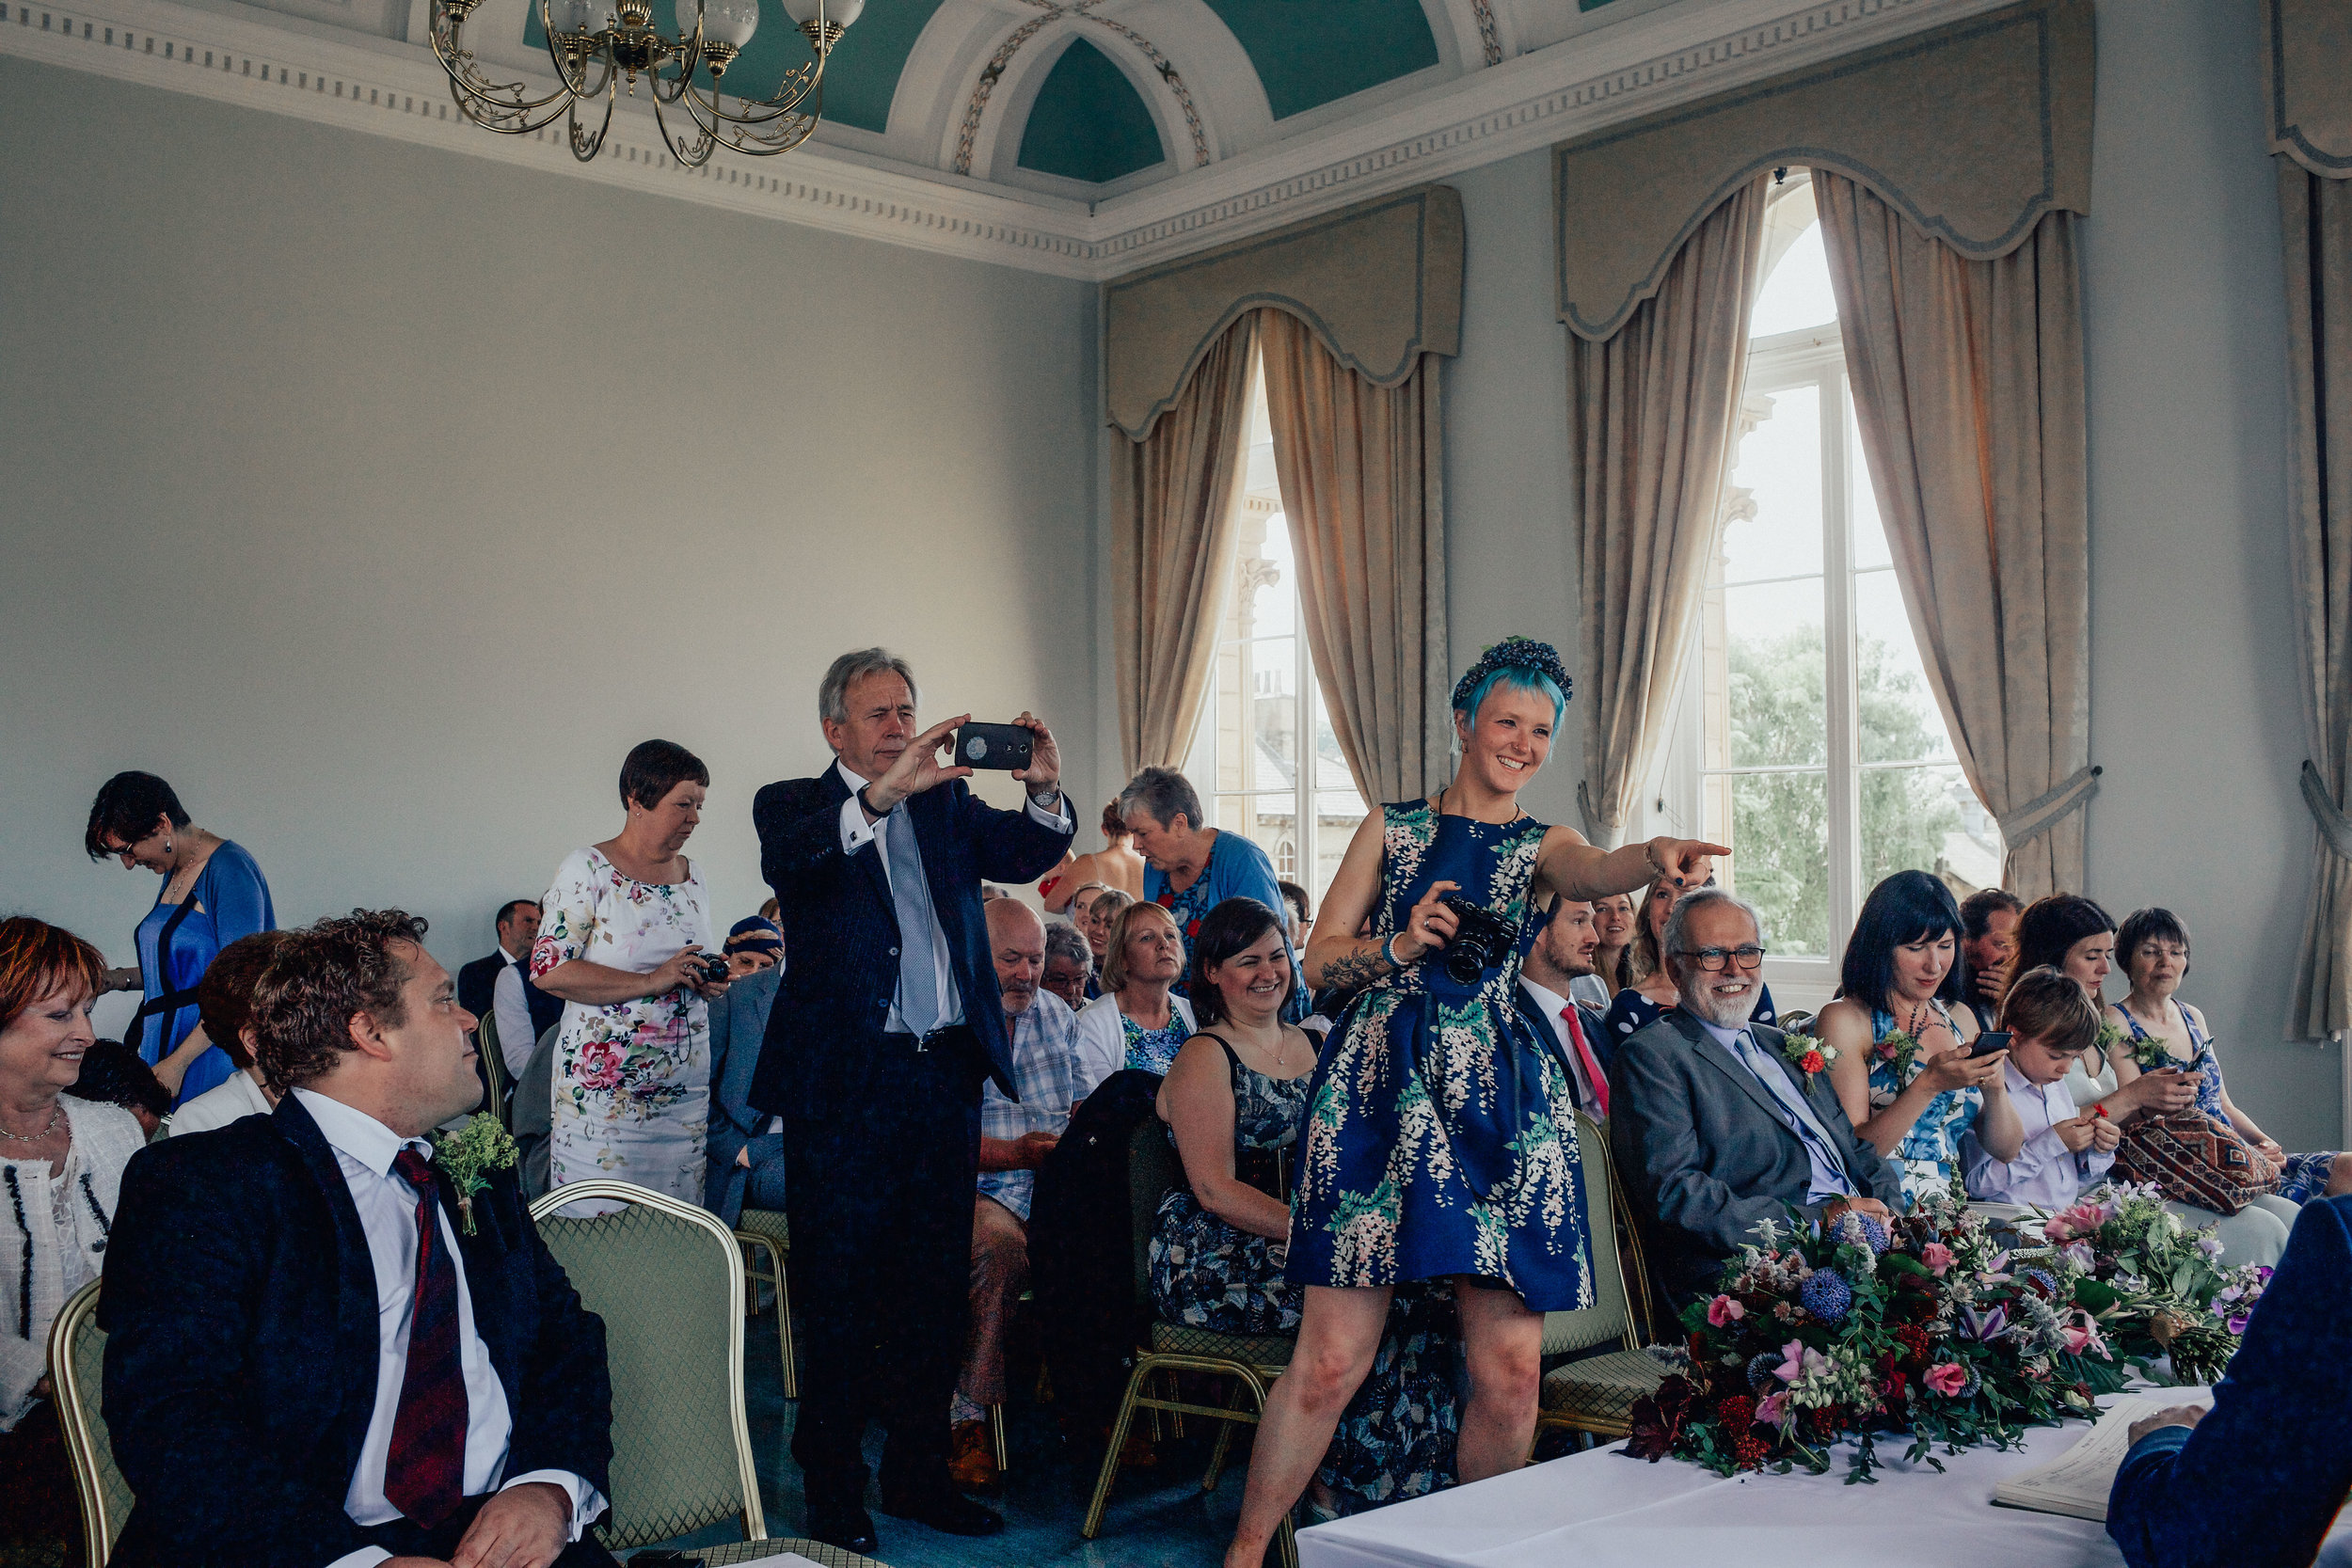 VICTORIA_HALL_SALTAIRE_VINTAGE_YORKSHIRE_WEDDING_PJ_PHILLIPS_PHOTOGRAPHY_51.jpg